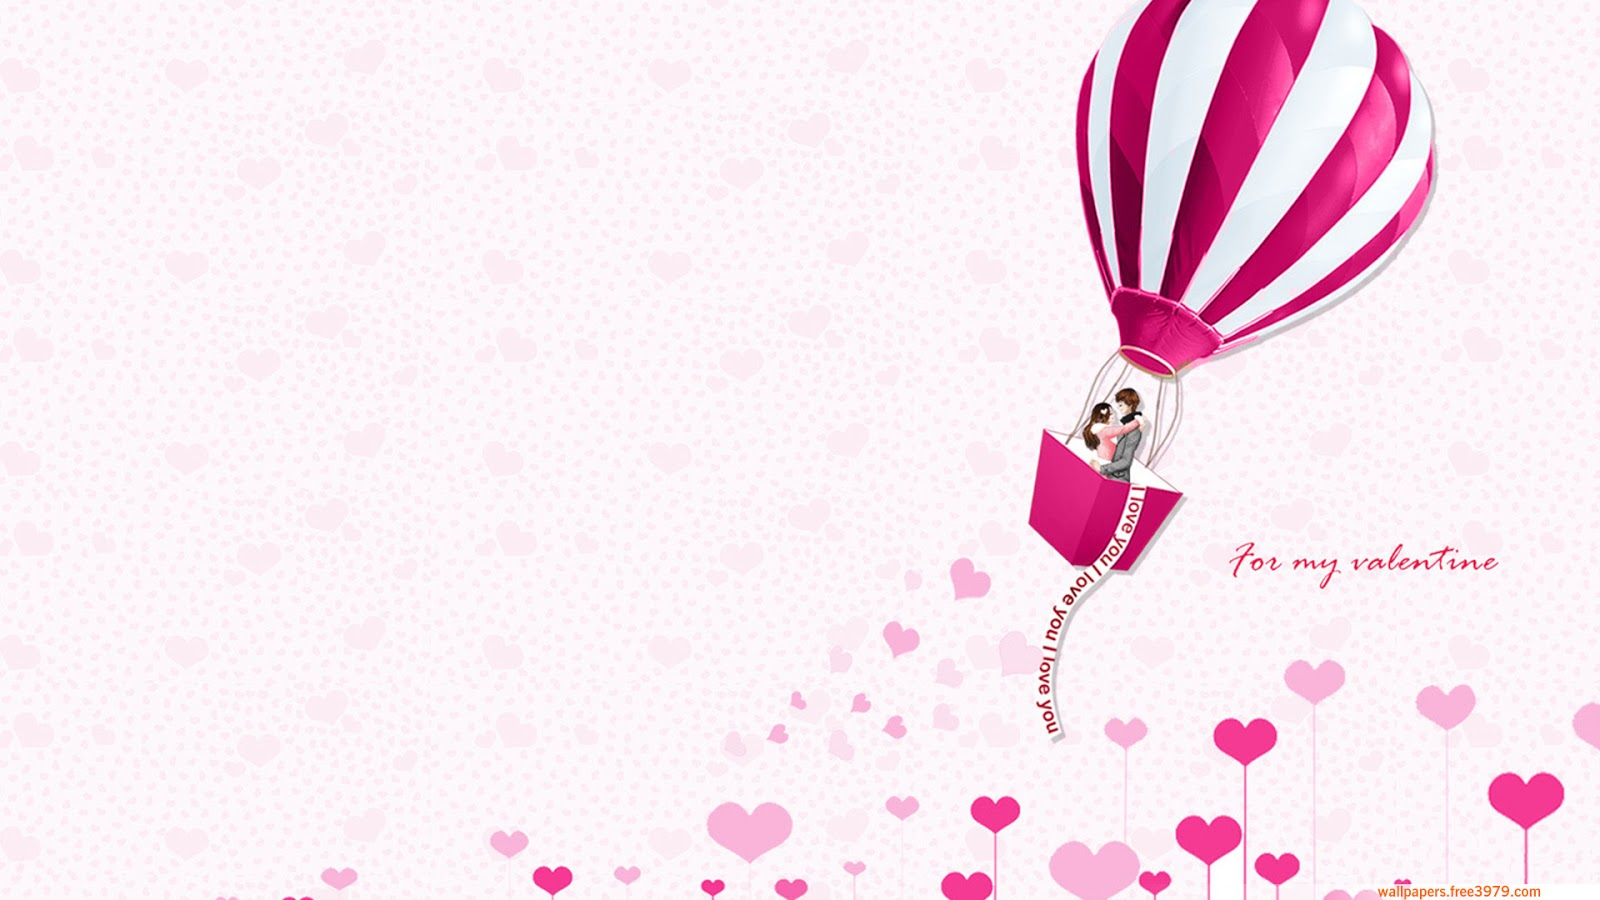 Wallpapers wallpaper 400 beautiful valentine 39 s day - Valentines day background wallpaper ...